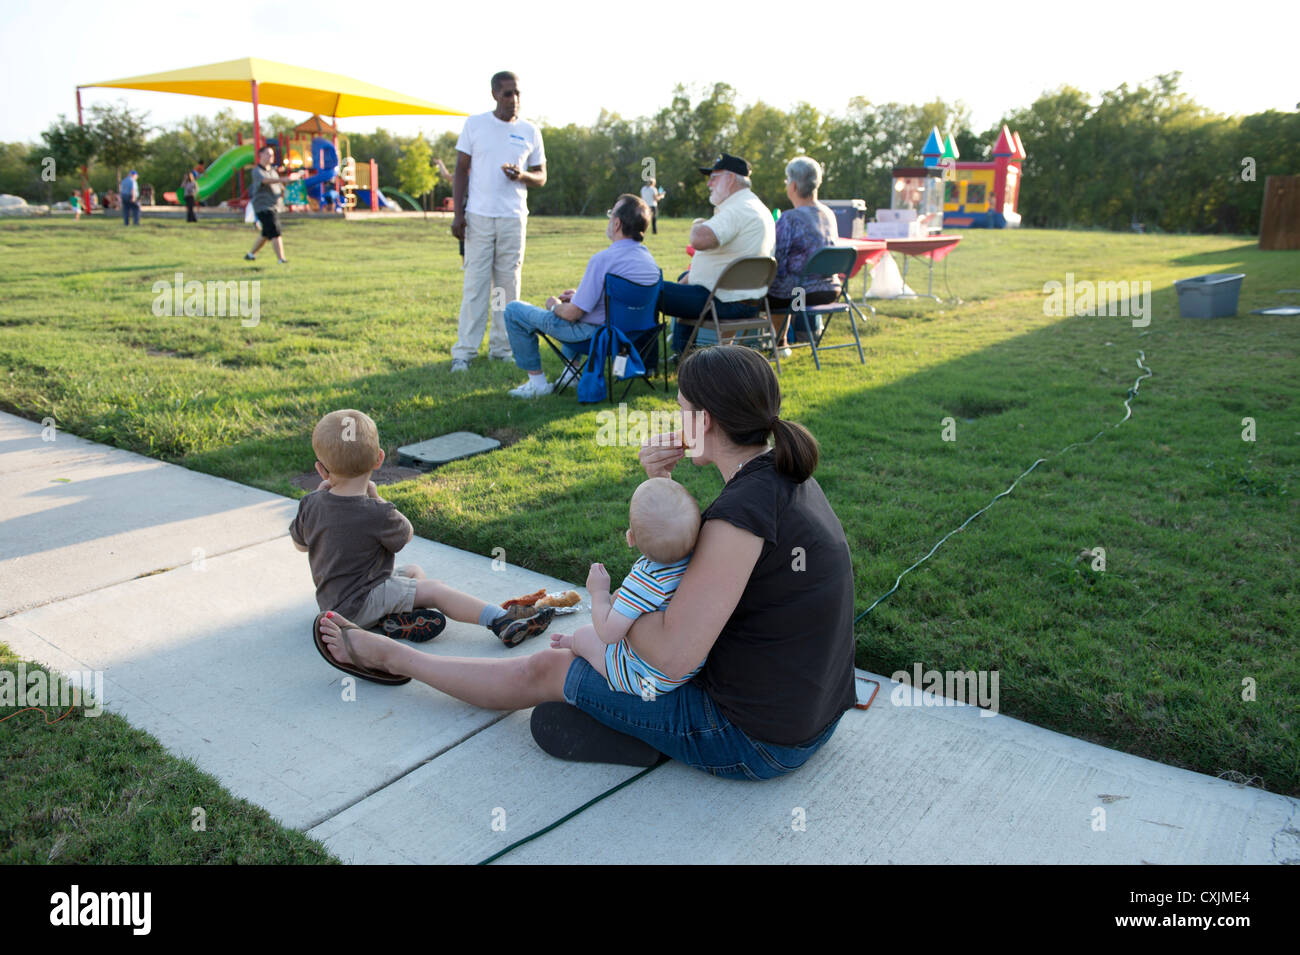 Families gather at neighborhood park with police for the annual  National Night Out gathering to interact with neighbors - Stock Image